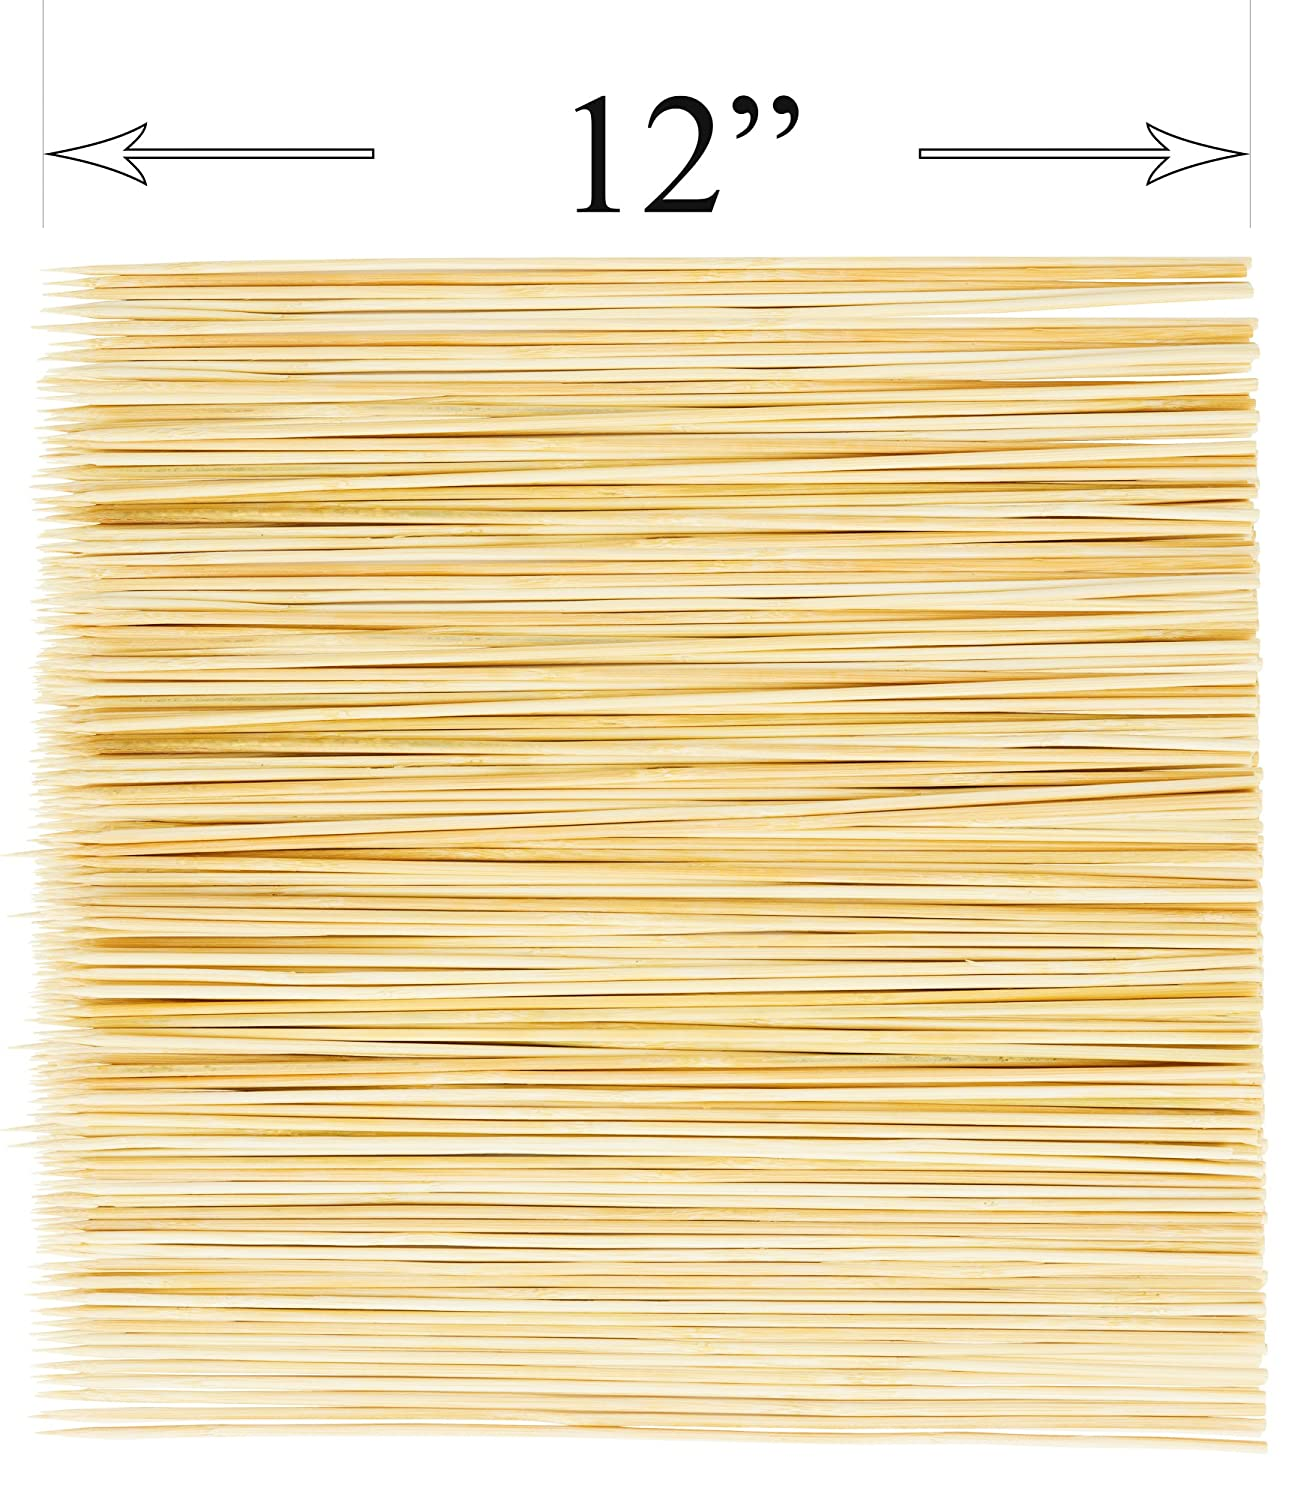 DecorRack Natural Bamboo Skewer Sticks, 400 Pack of 12 inch Natural Wooden Barbecue Kabob Skewers, Best for Grill, BBQ, Kebab, Marshmallow Roasting or Fruit Sticks